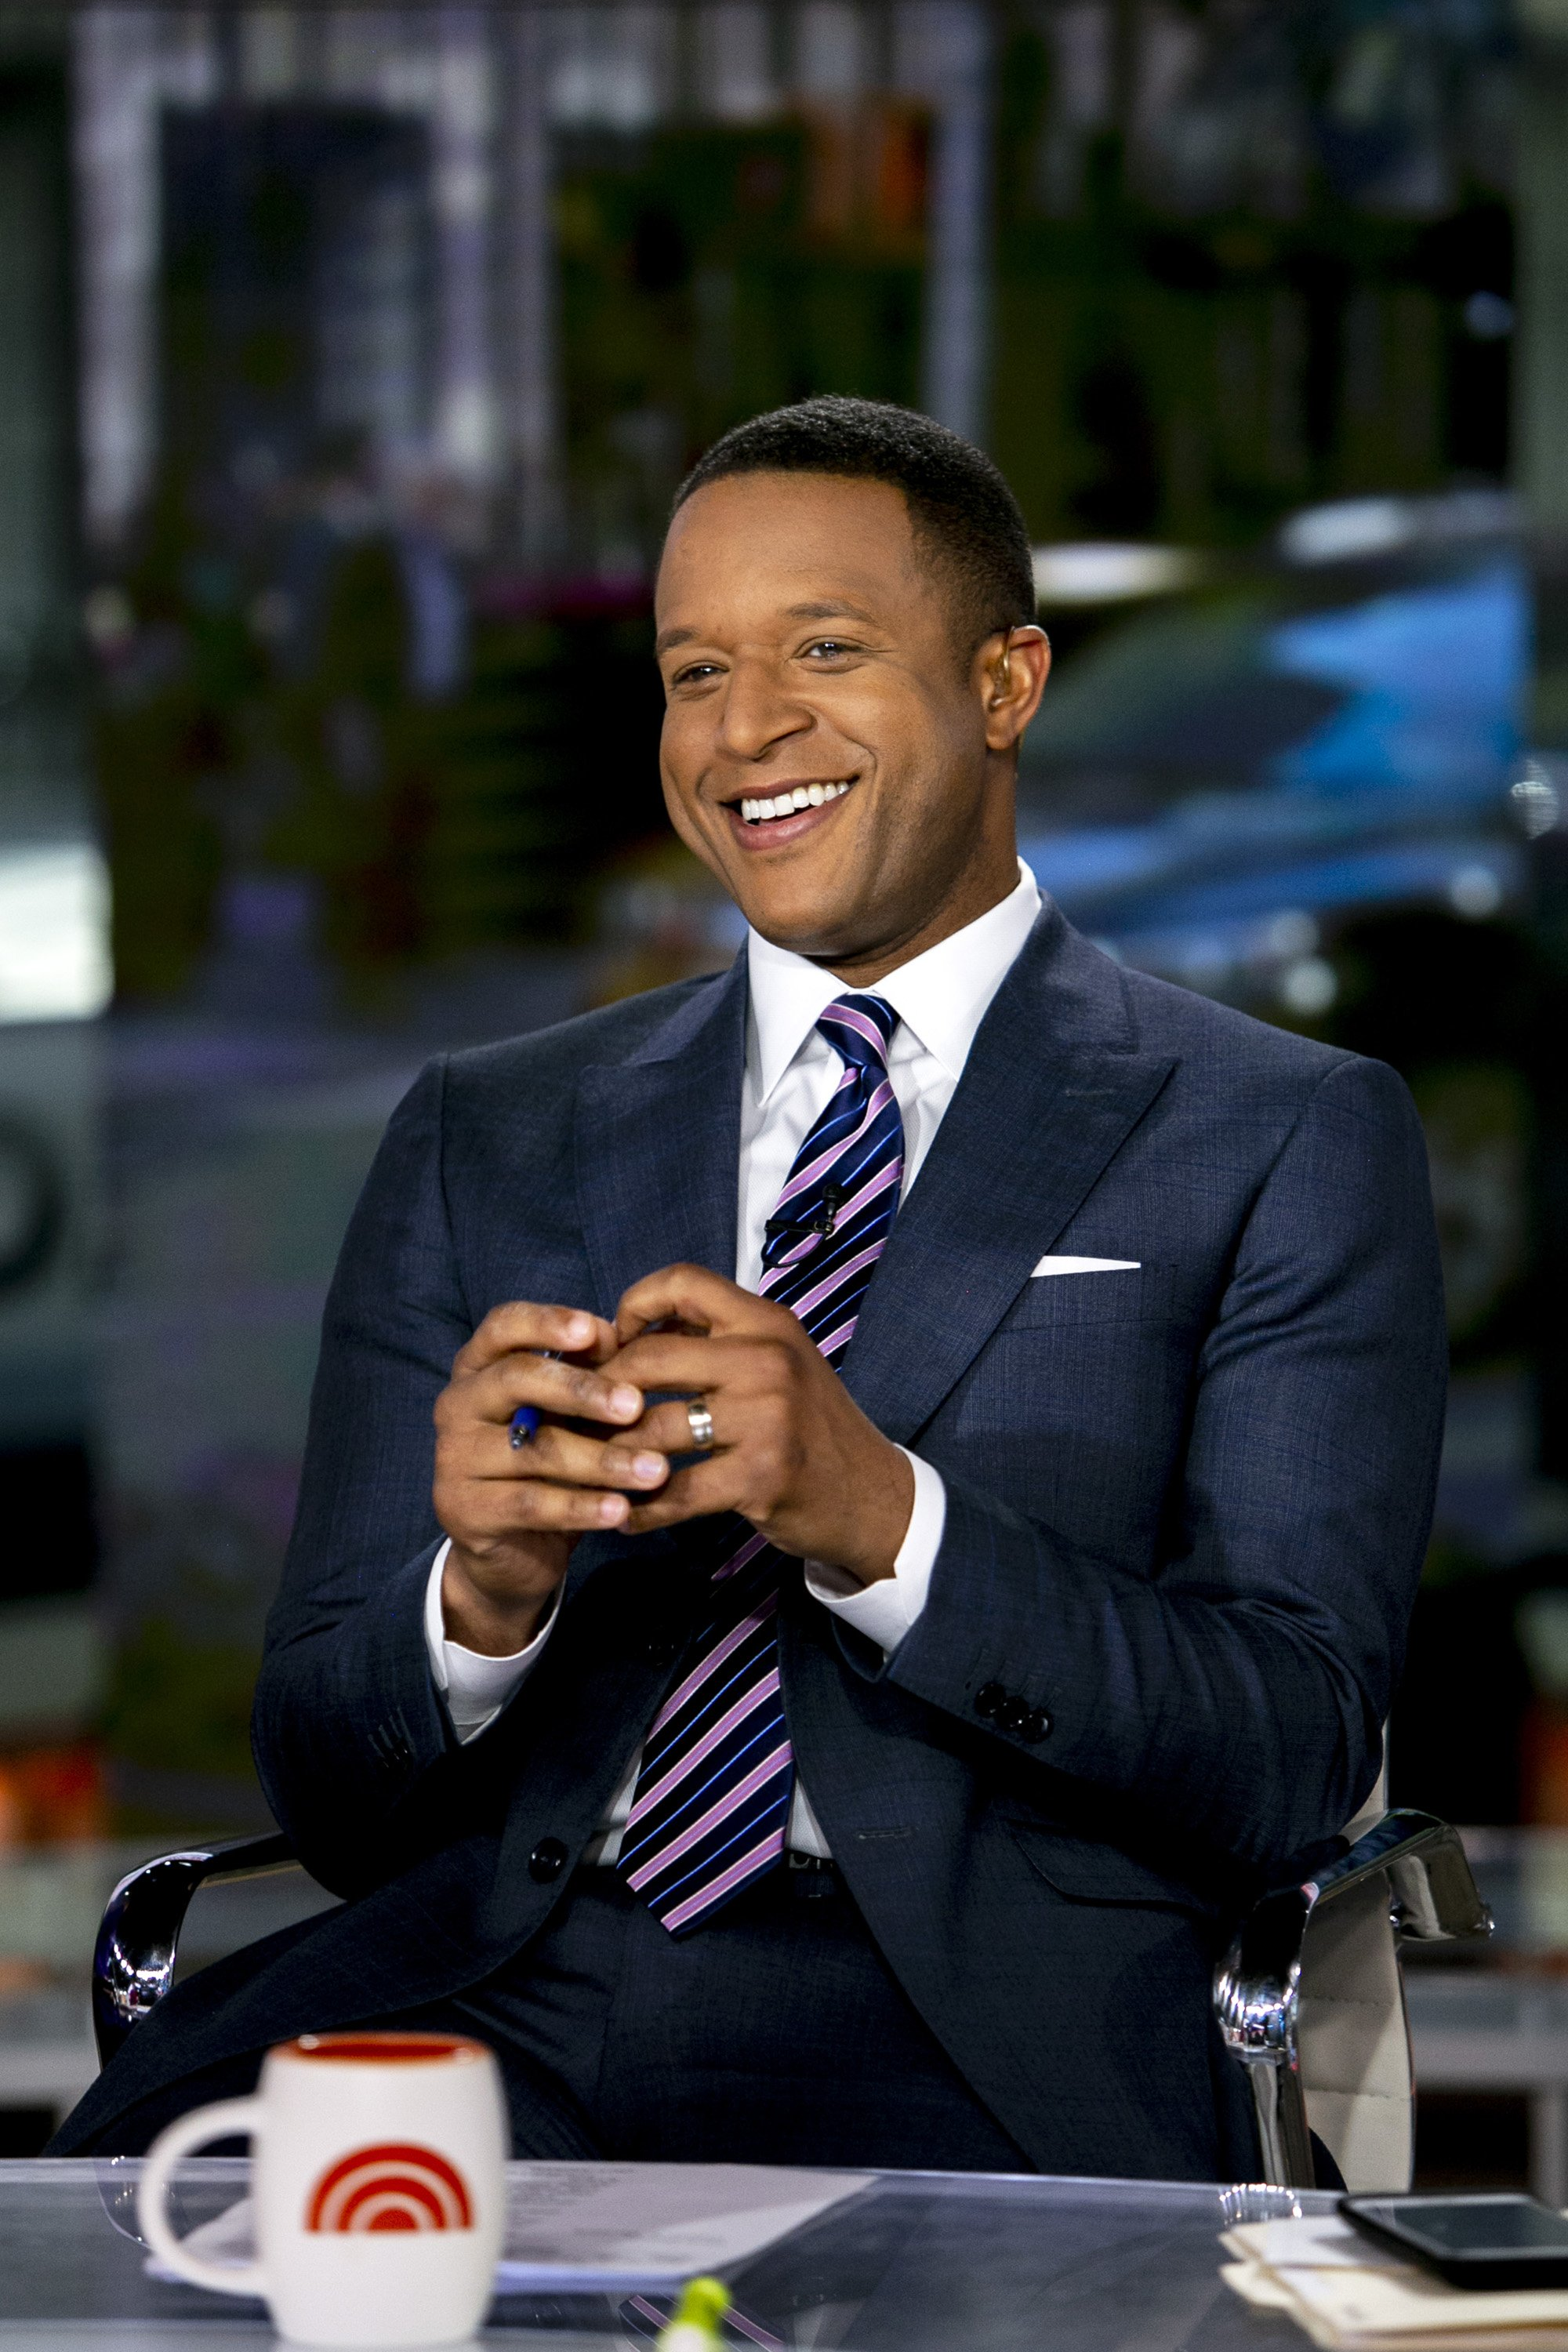 """Craig Melvin picture on the """"Today"""" show. 2019. 